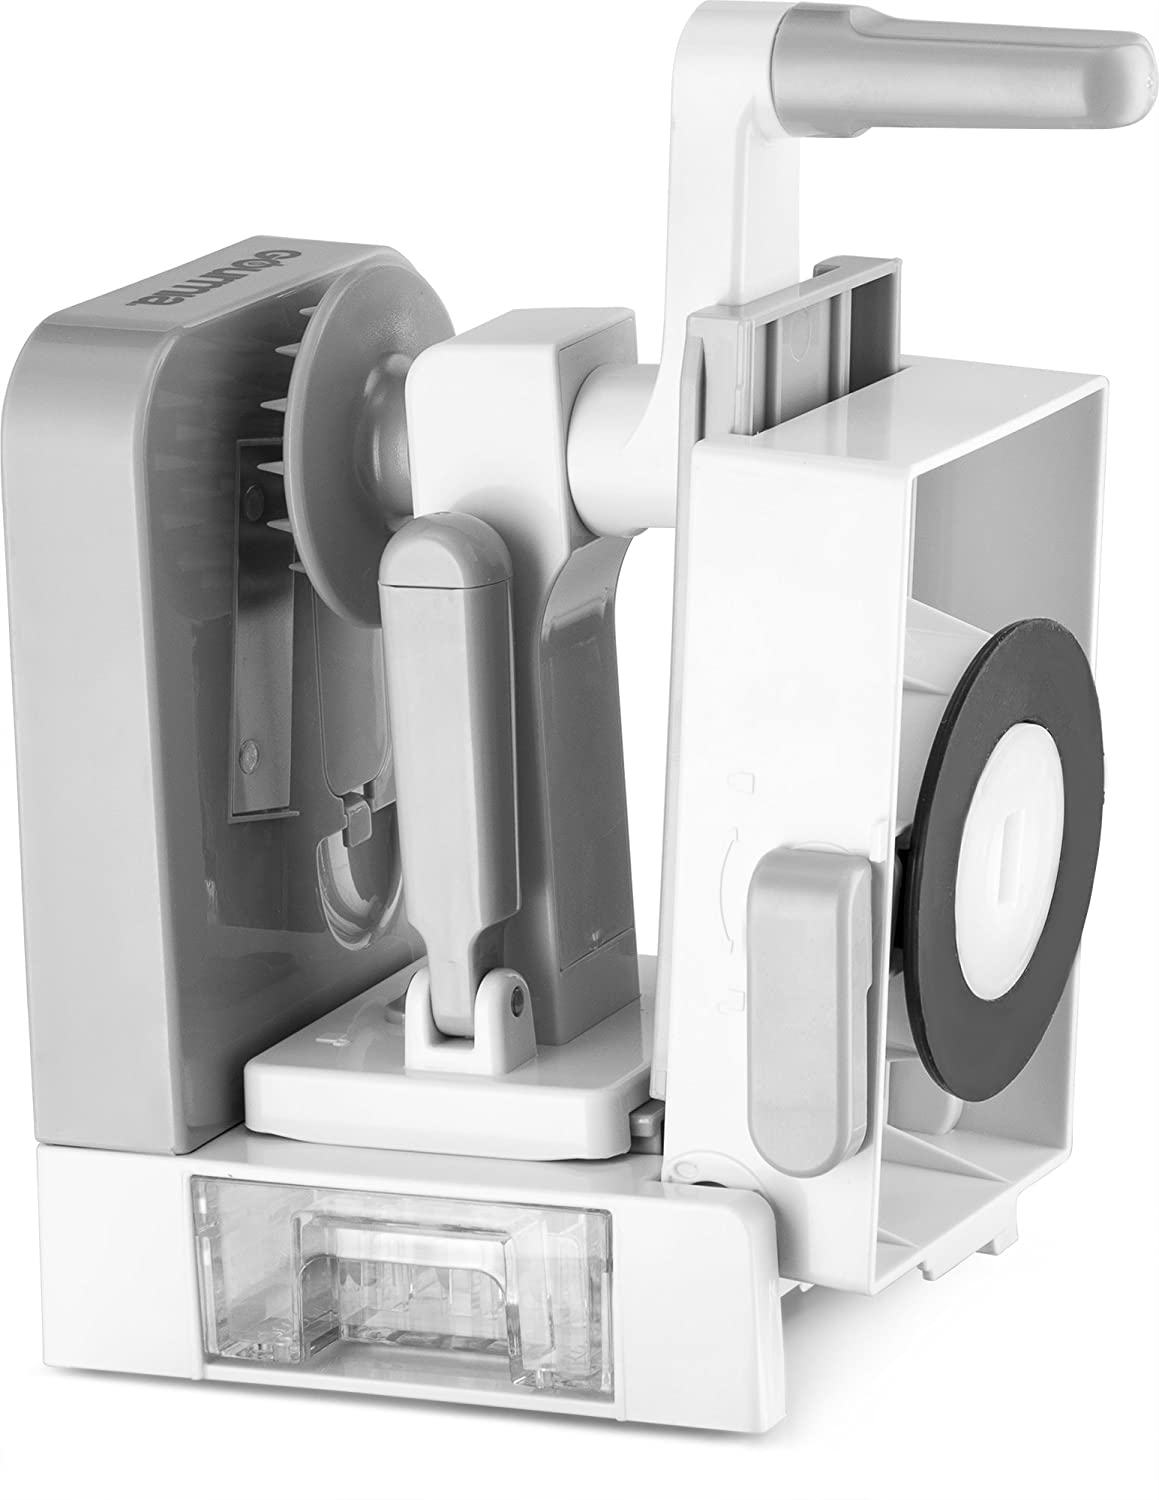 Storage Container No-Skid Suction Feet Gourmia GSS9615 Foldable 5 Blade Spiralizer Vegetable Slicer 5 Stainless Steel Blades for Thick and Thin Pasta Spirals BPA Free Gray